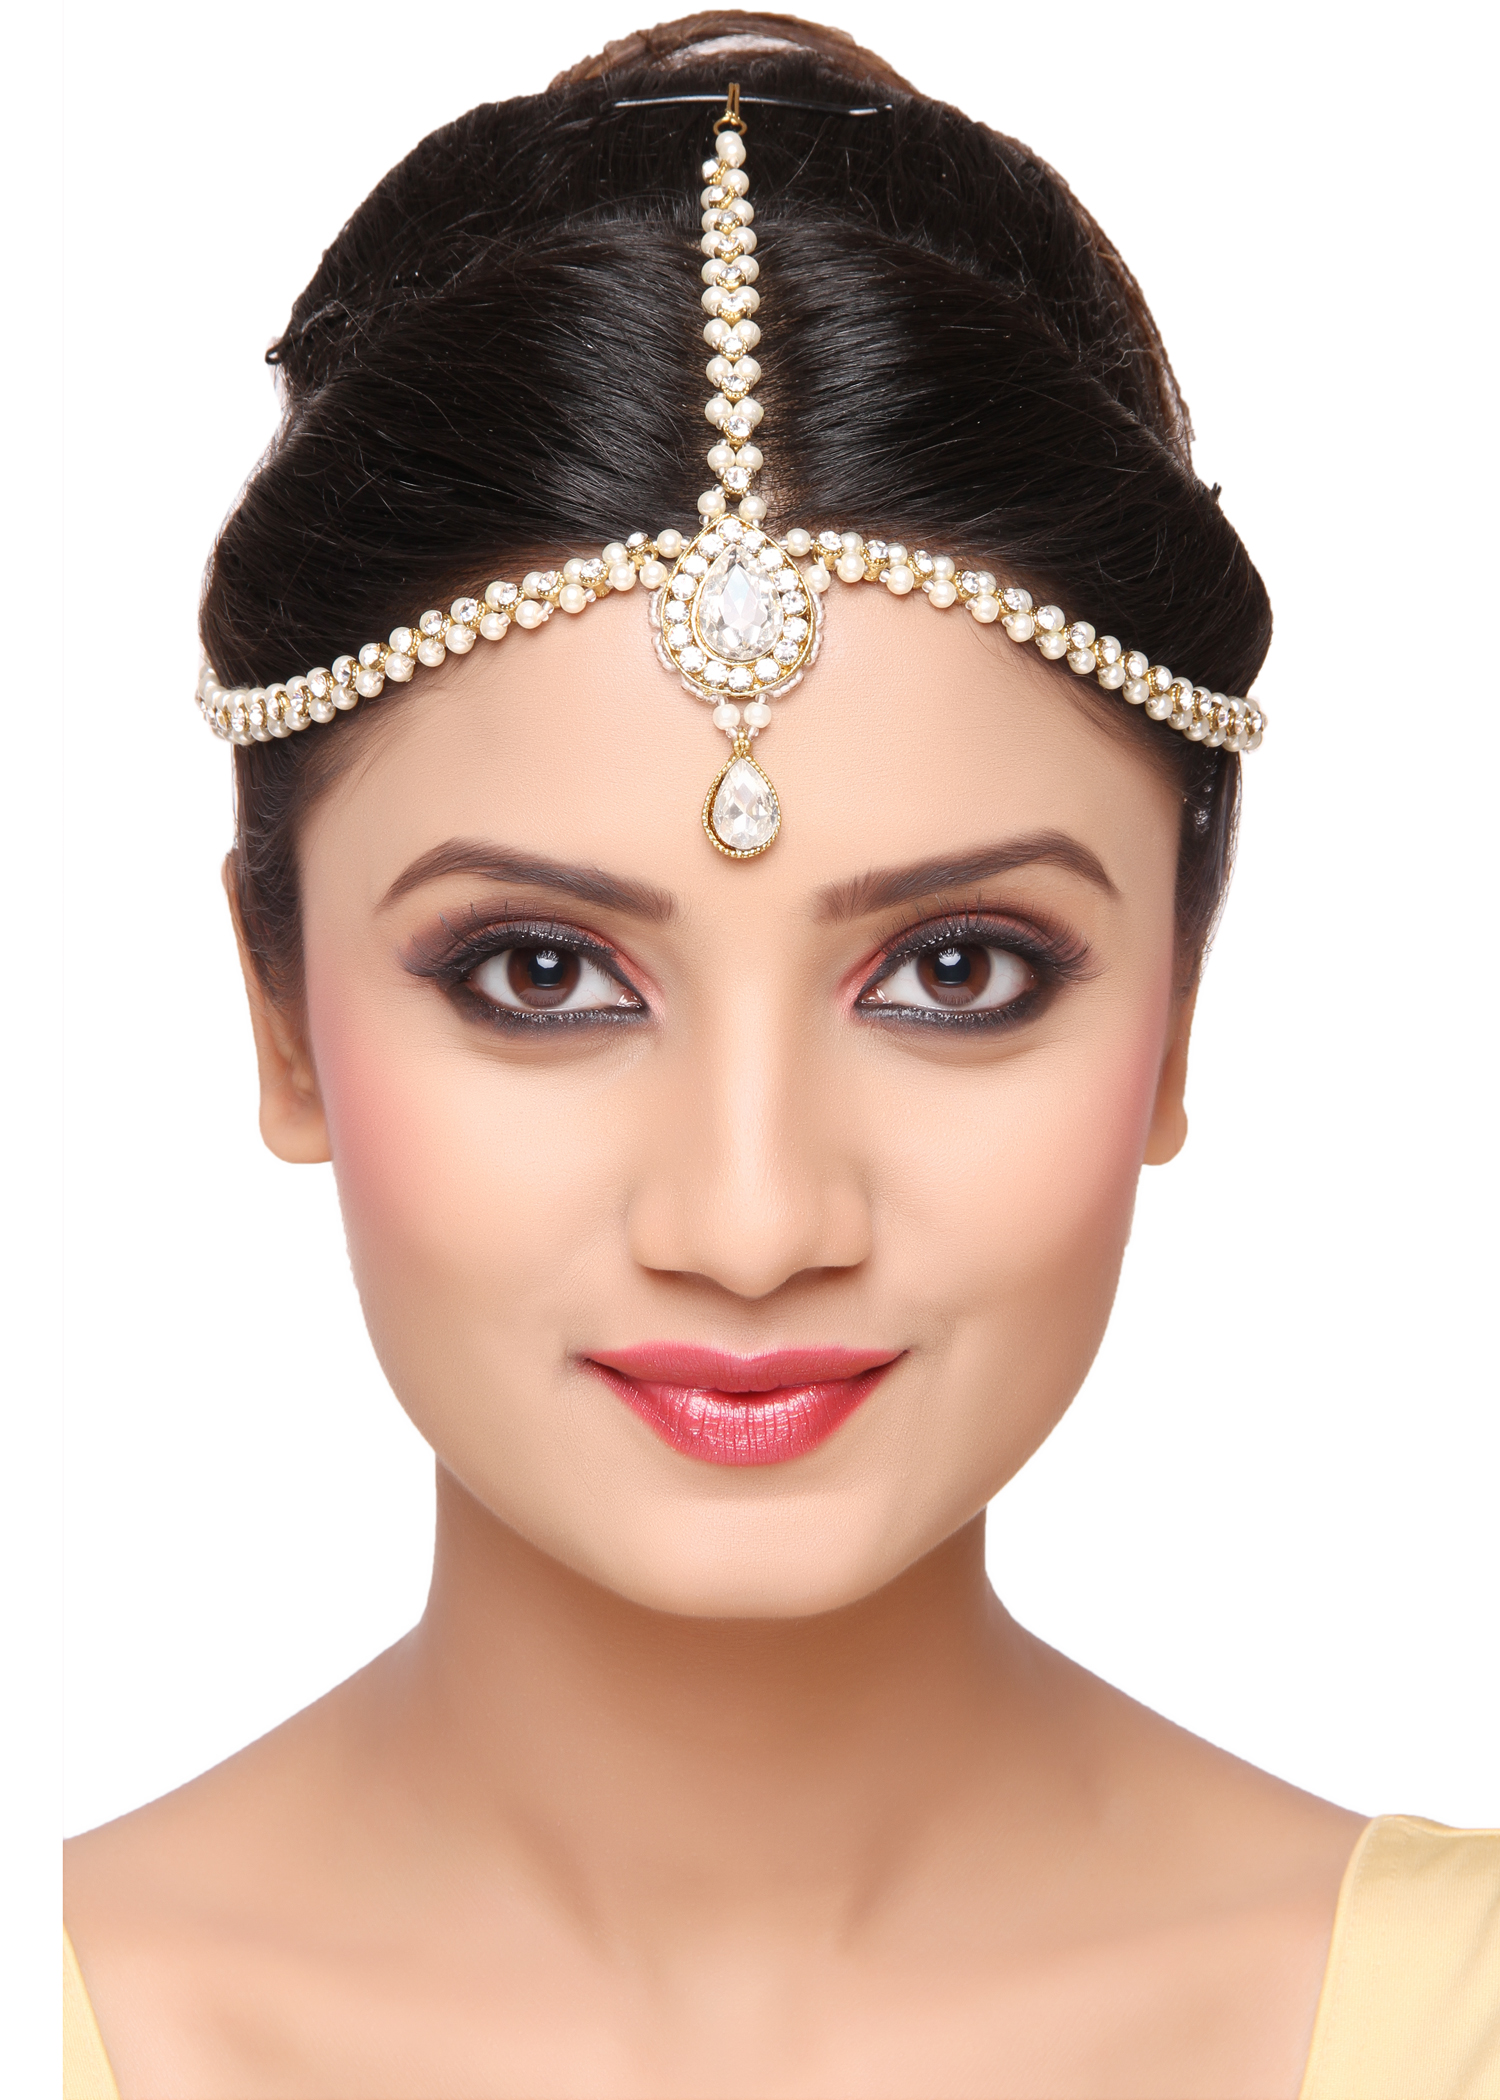 Trendy bridal headpiece - Buy Trendy Design Matha Patti For Wedding Gold Finishing With Pearl And Stone In White Hair